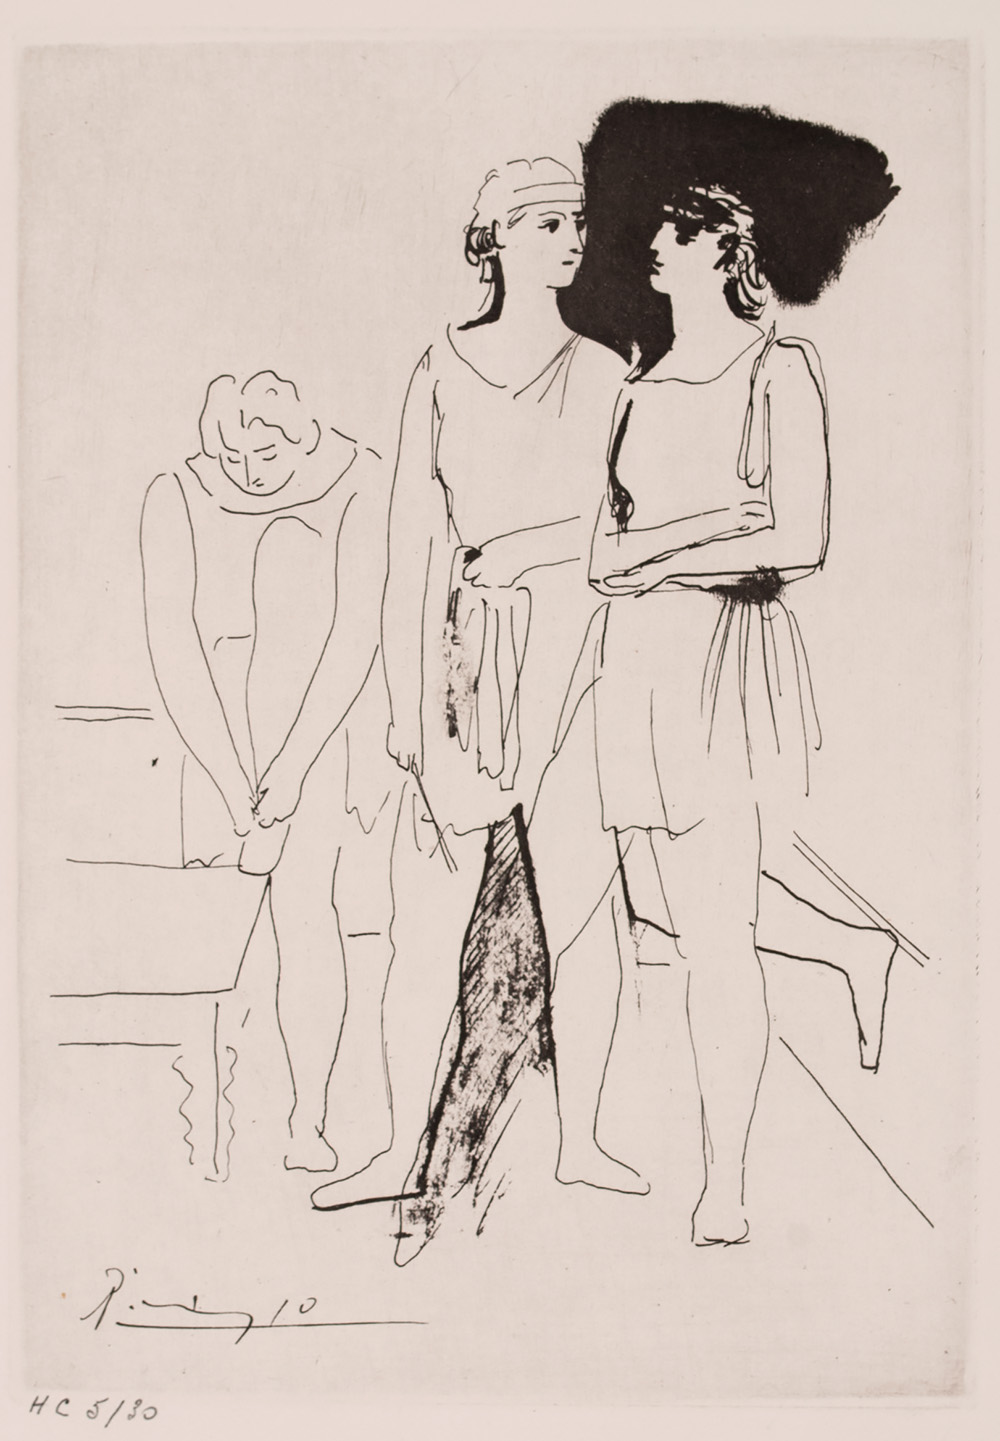 Title: BALLET SERGE LIFAR Year: 1945 Medium: ETCHING Image size: 8.3 X 12 in